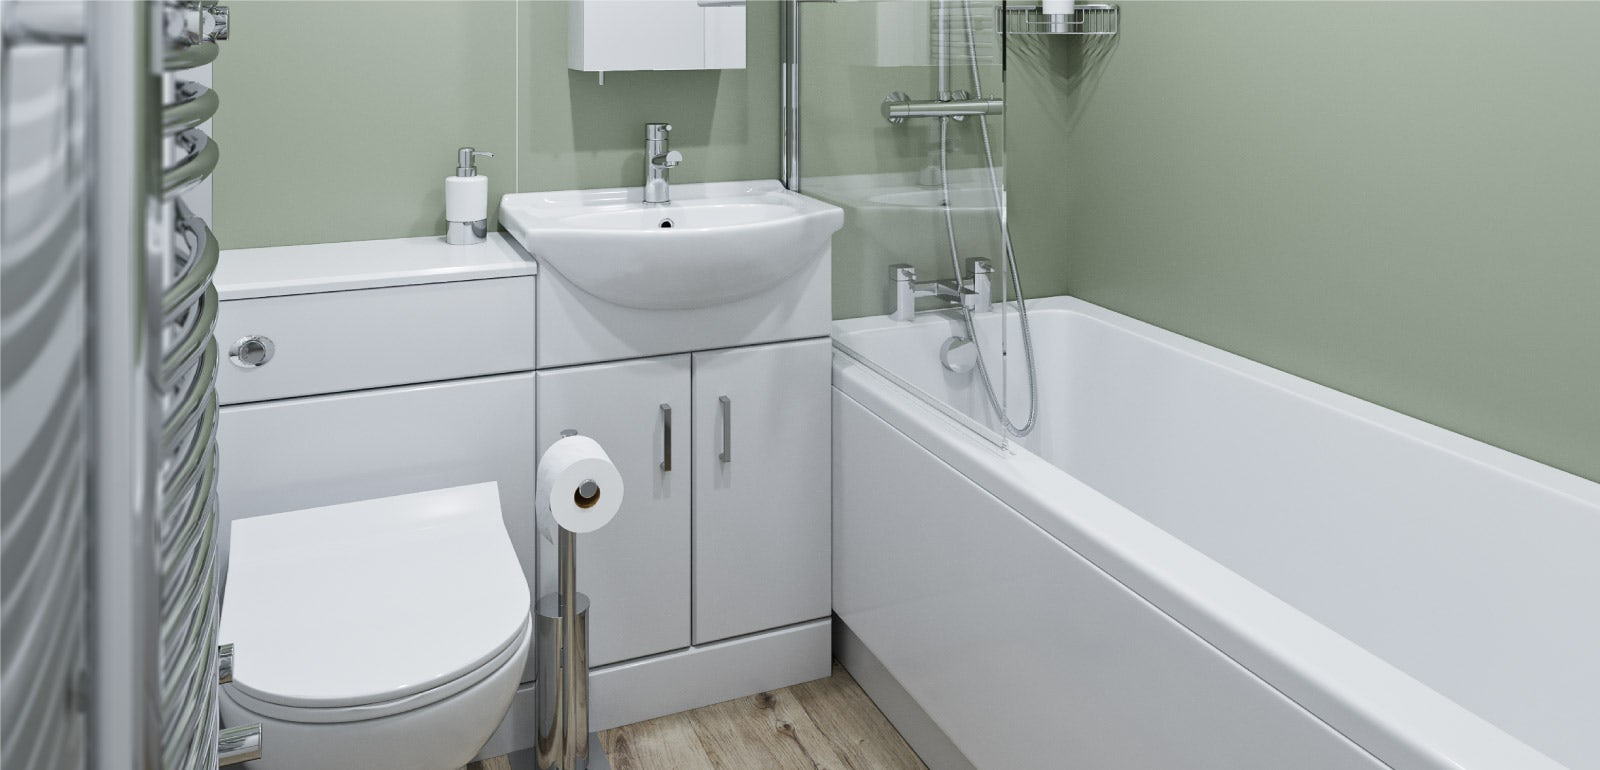 Small Spaces: How small can you go with your bathroom?